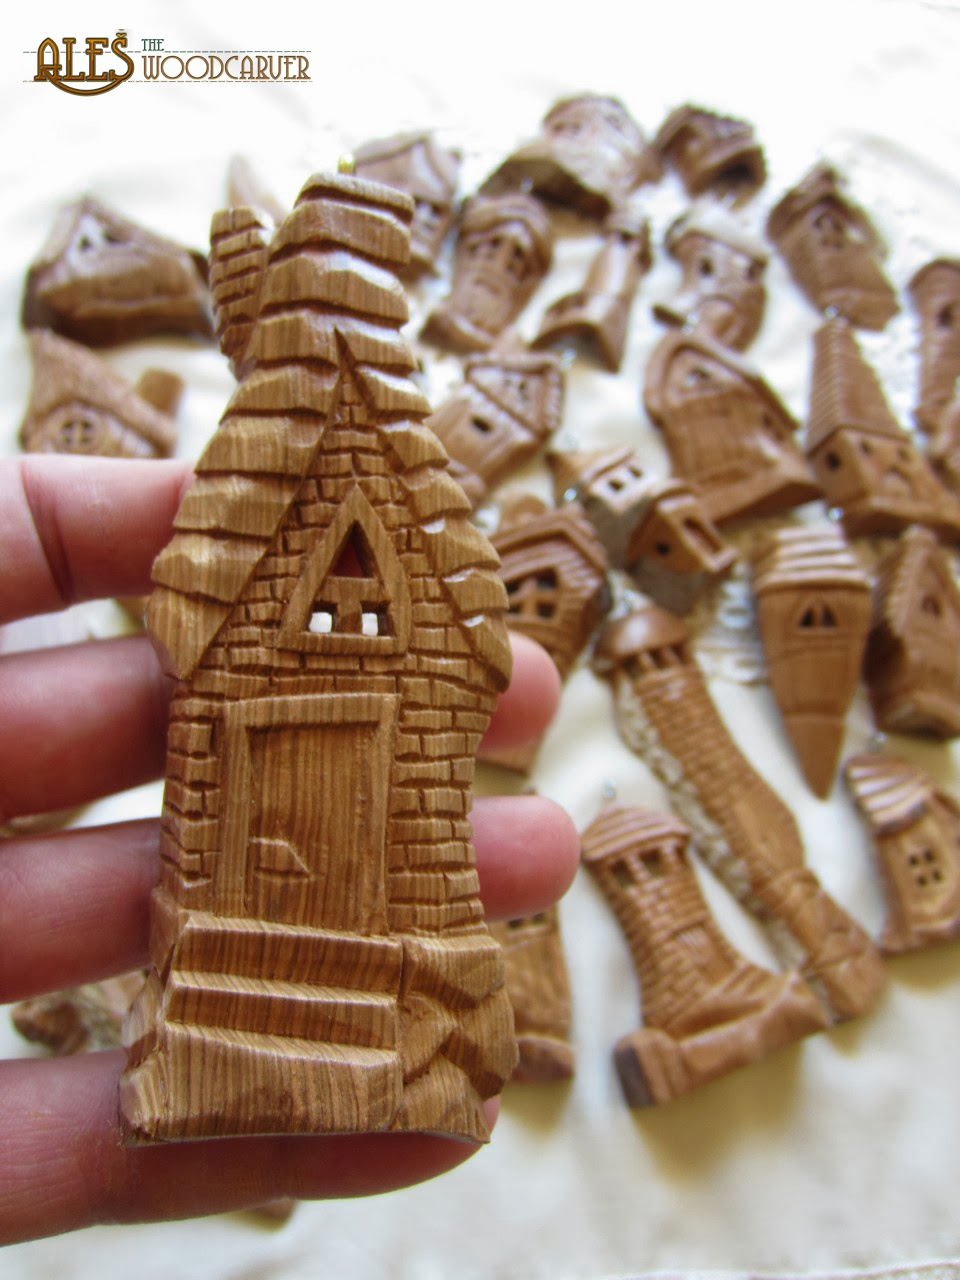 Ales the woodcarver yule ornaments